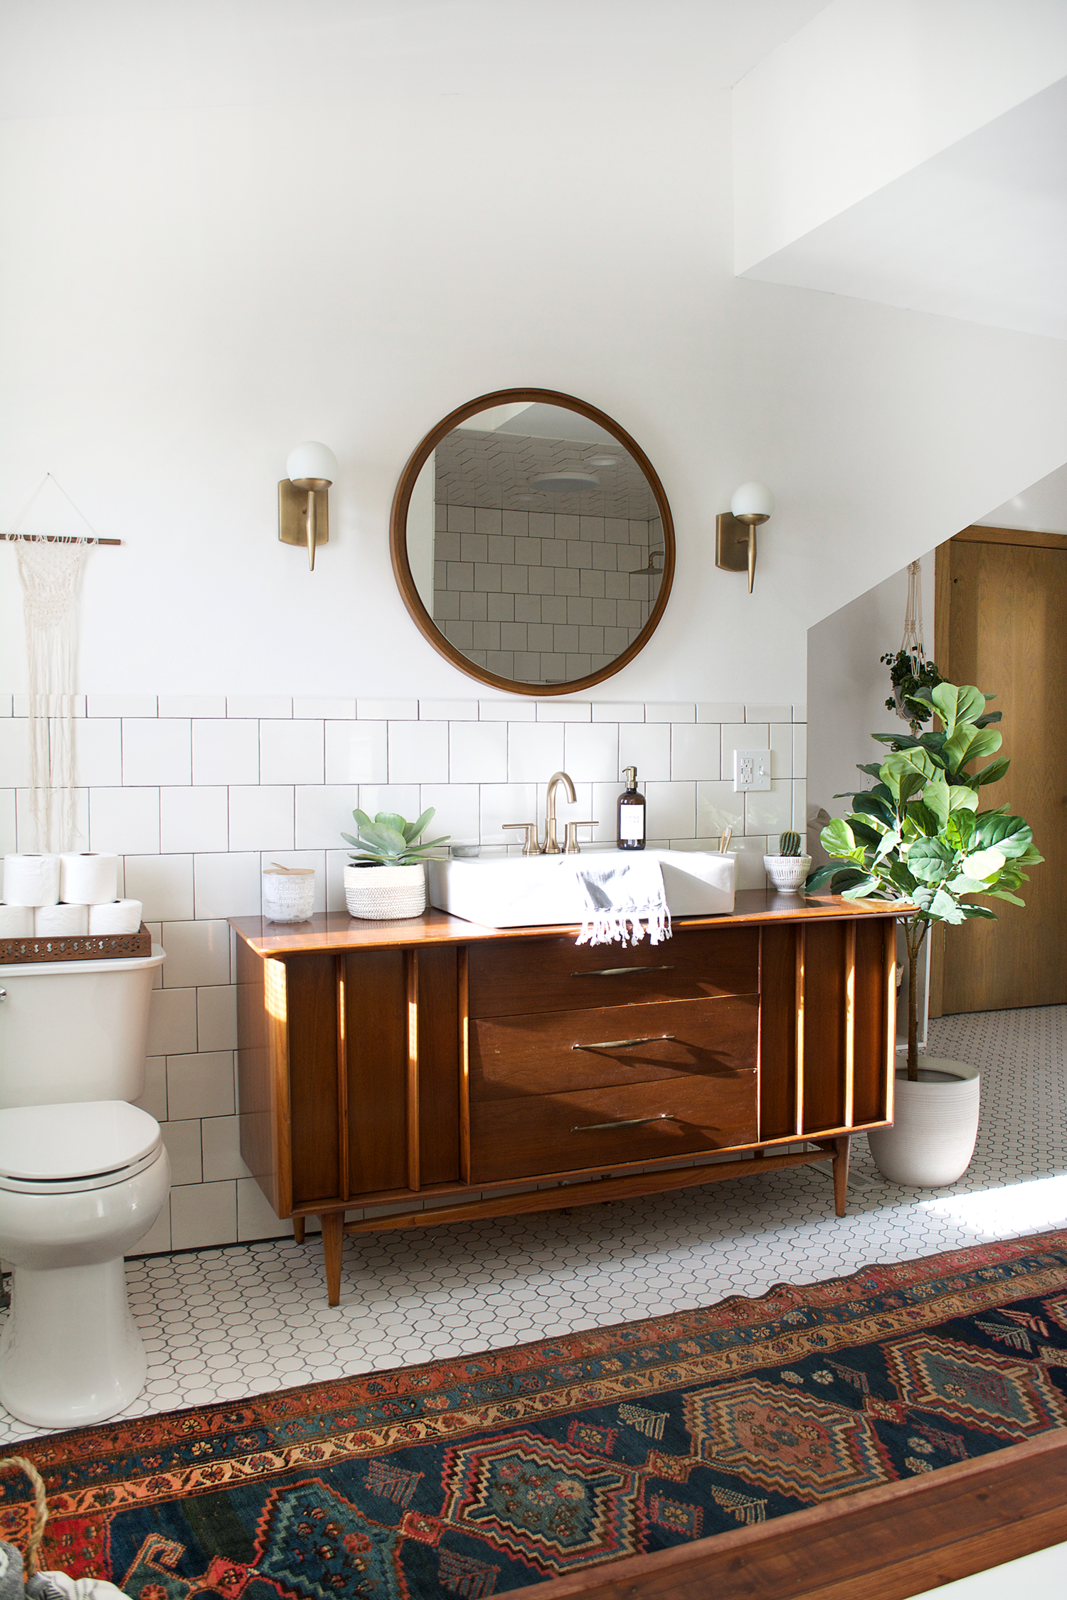 Bath, Vessel, Wood, Ceramic Tile, Two Piece, Subway Tile, and Wall She had a vessel sink and a Delta faucet in champagne bronze incorporated into the vintage dresser.  Bath Ceramic Tile Subway Tile Two Piece Photos from Before & After: An Outdated Bathroom Gets a Complete Makeover in Just 6 Weeks